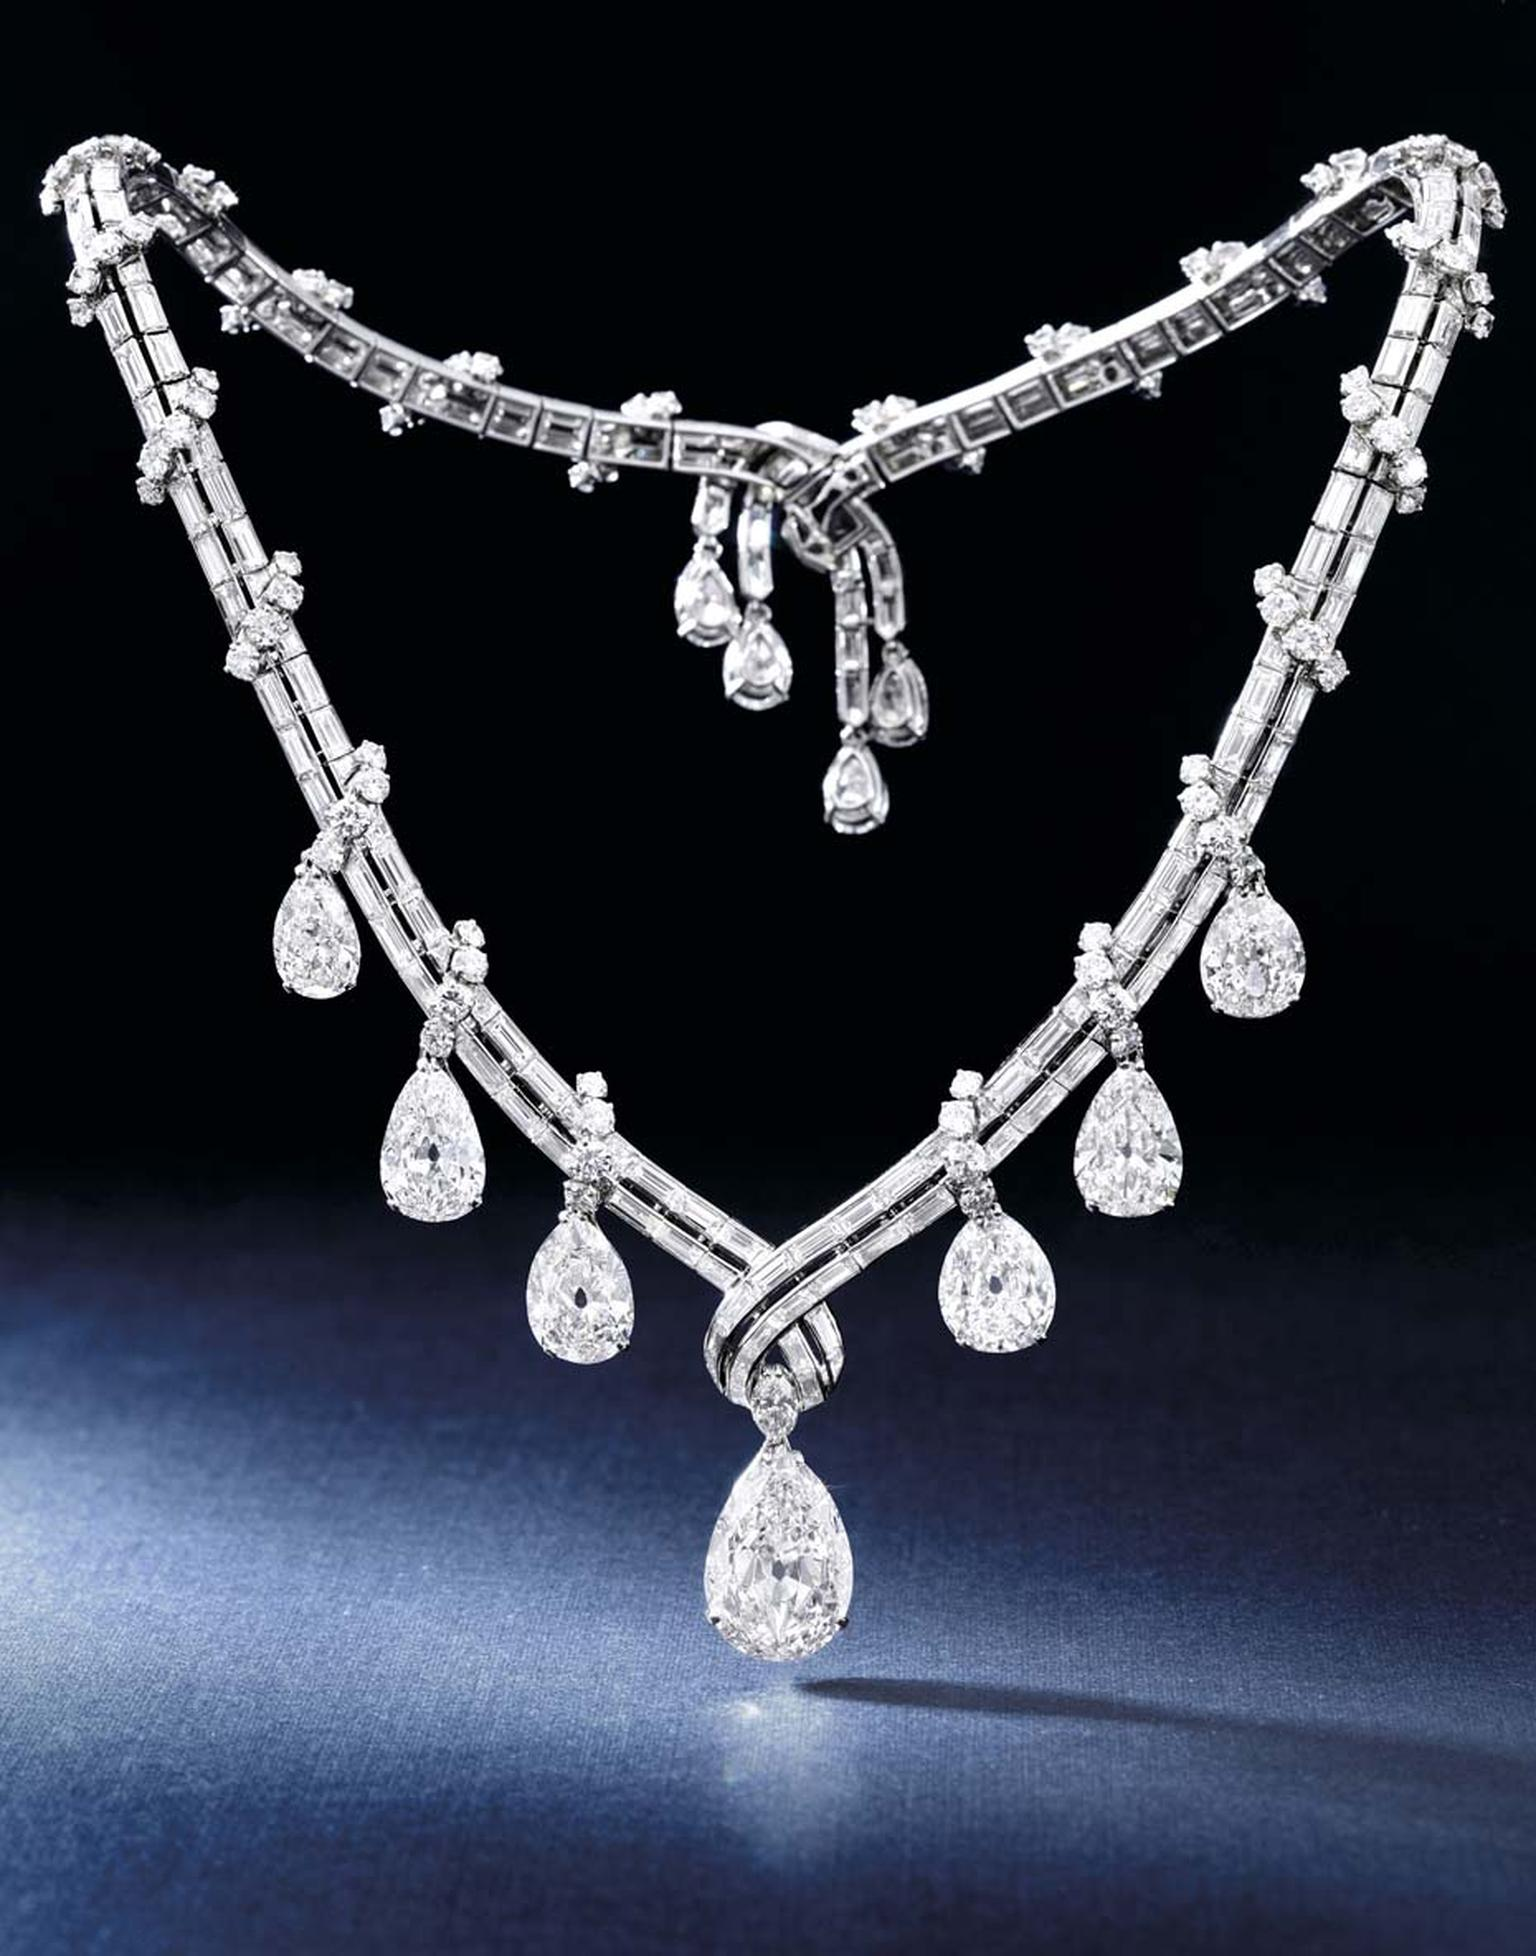 Bulgari jewellery diamond necklace, dating back to the 1950s, will go under the hammer at Sotheby's Hong Kong Magnificent Jewels and Jadeite spring sale on 6 April.